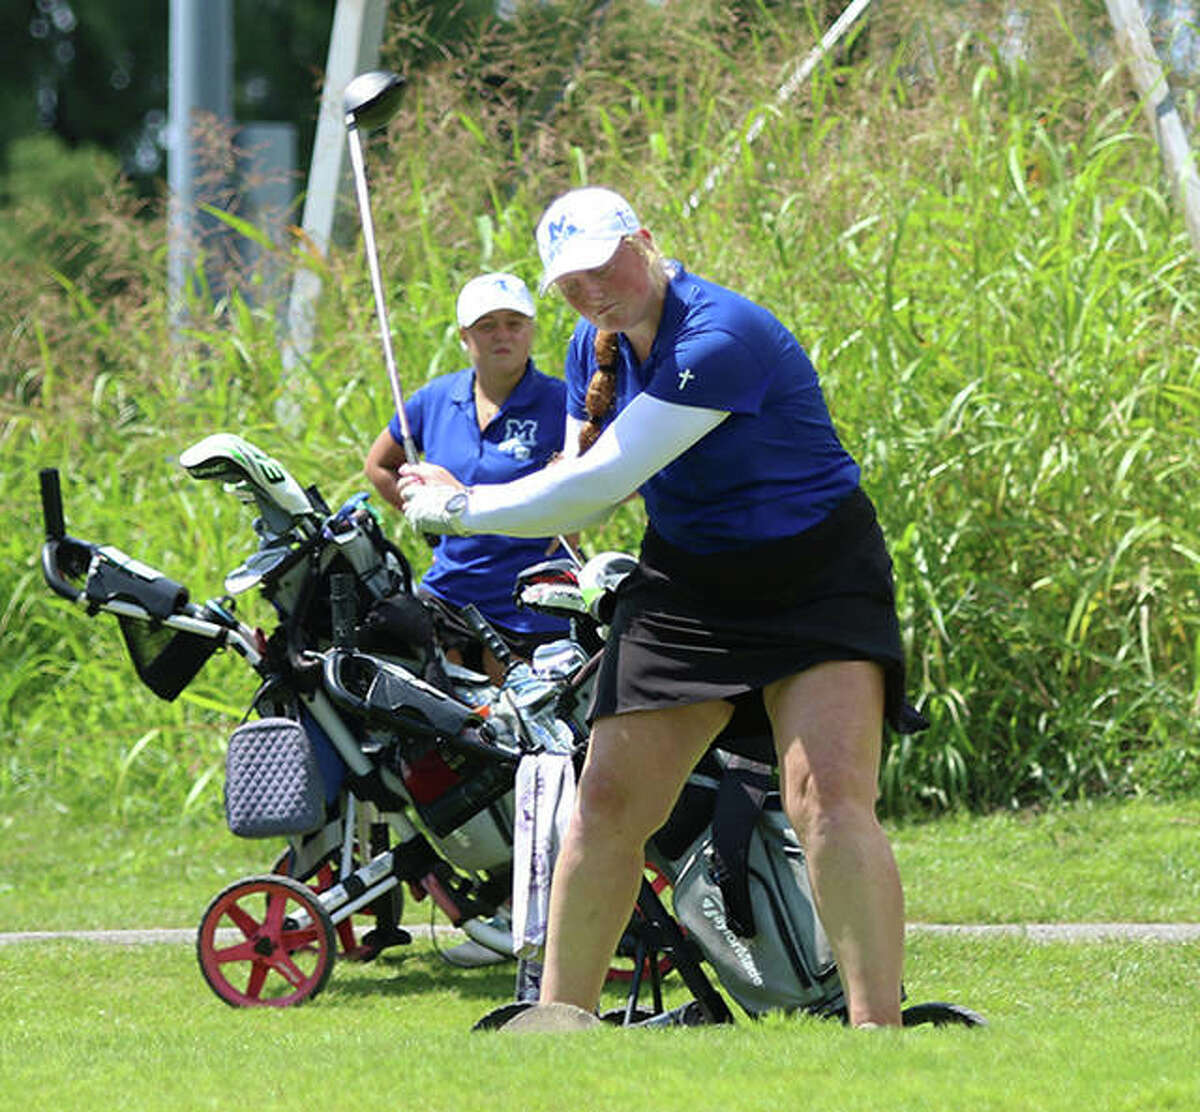 Marquette Catholic's Gracie Piar tees off on hole No. 10 to start the Blast Off Tourney on Aug. 21 at Spencer T. Olin. Teammate Audrey Cain, playing in the next foursome, watches the drive.